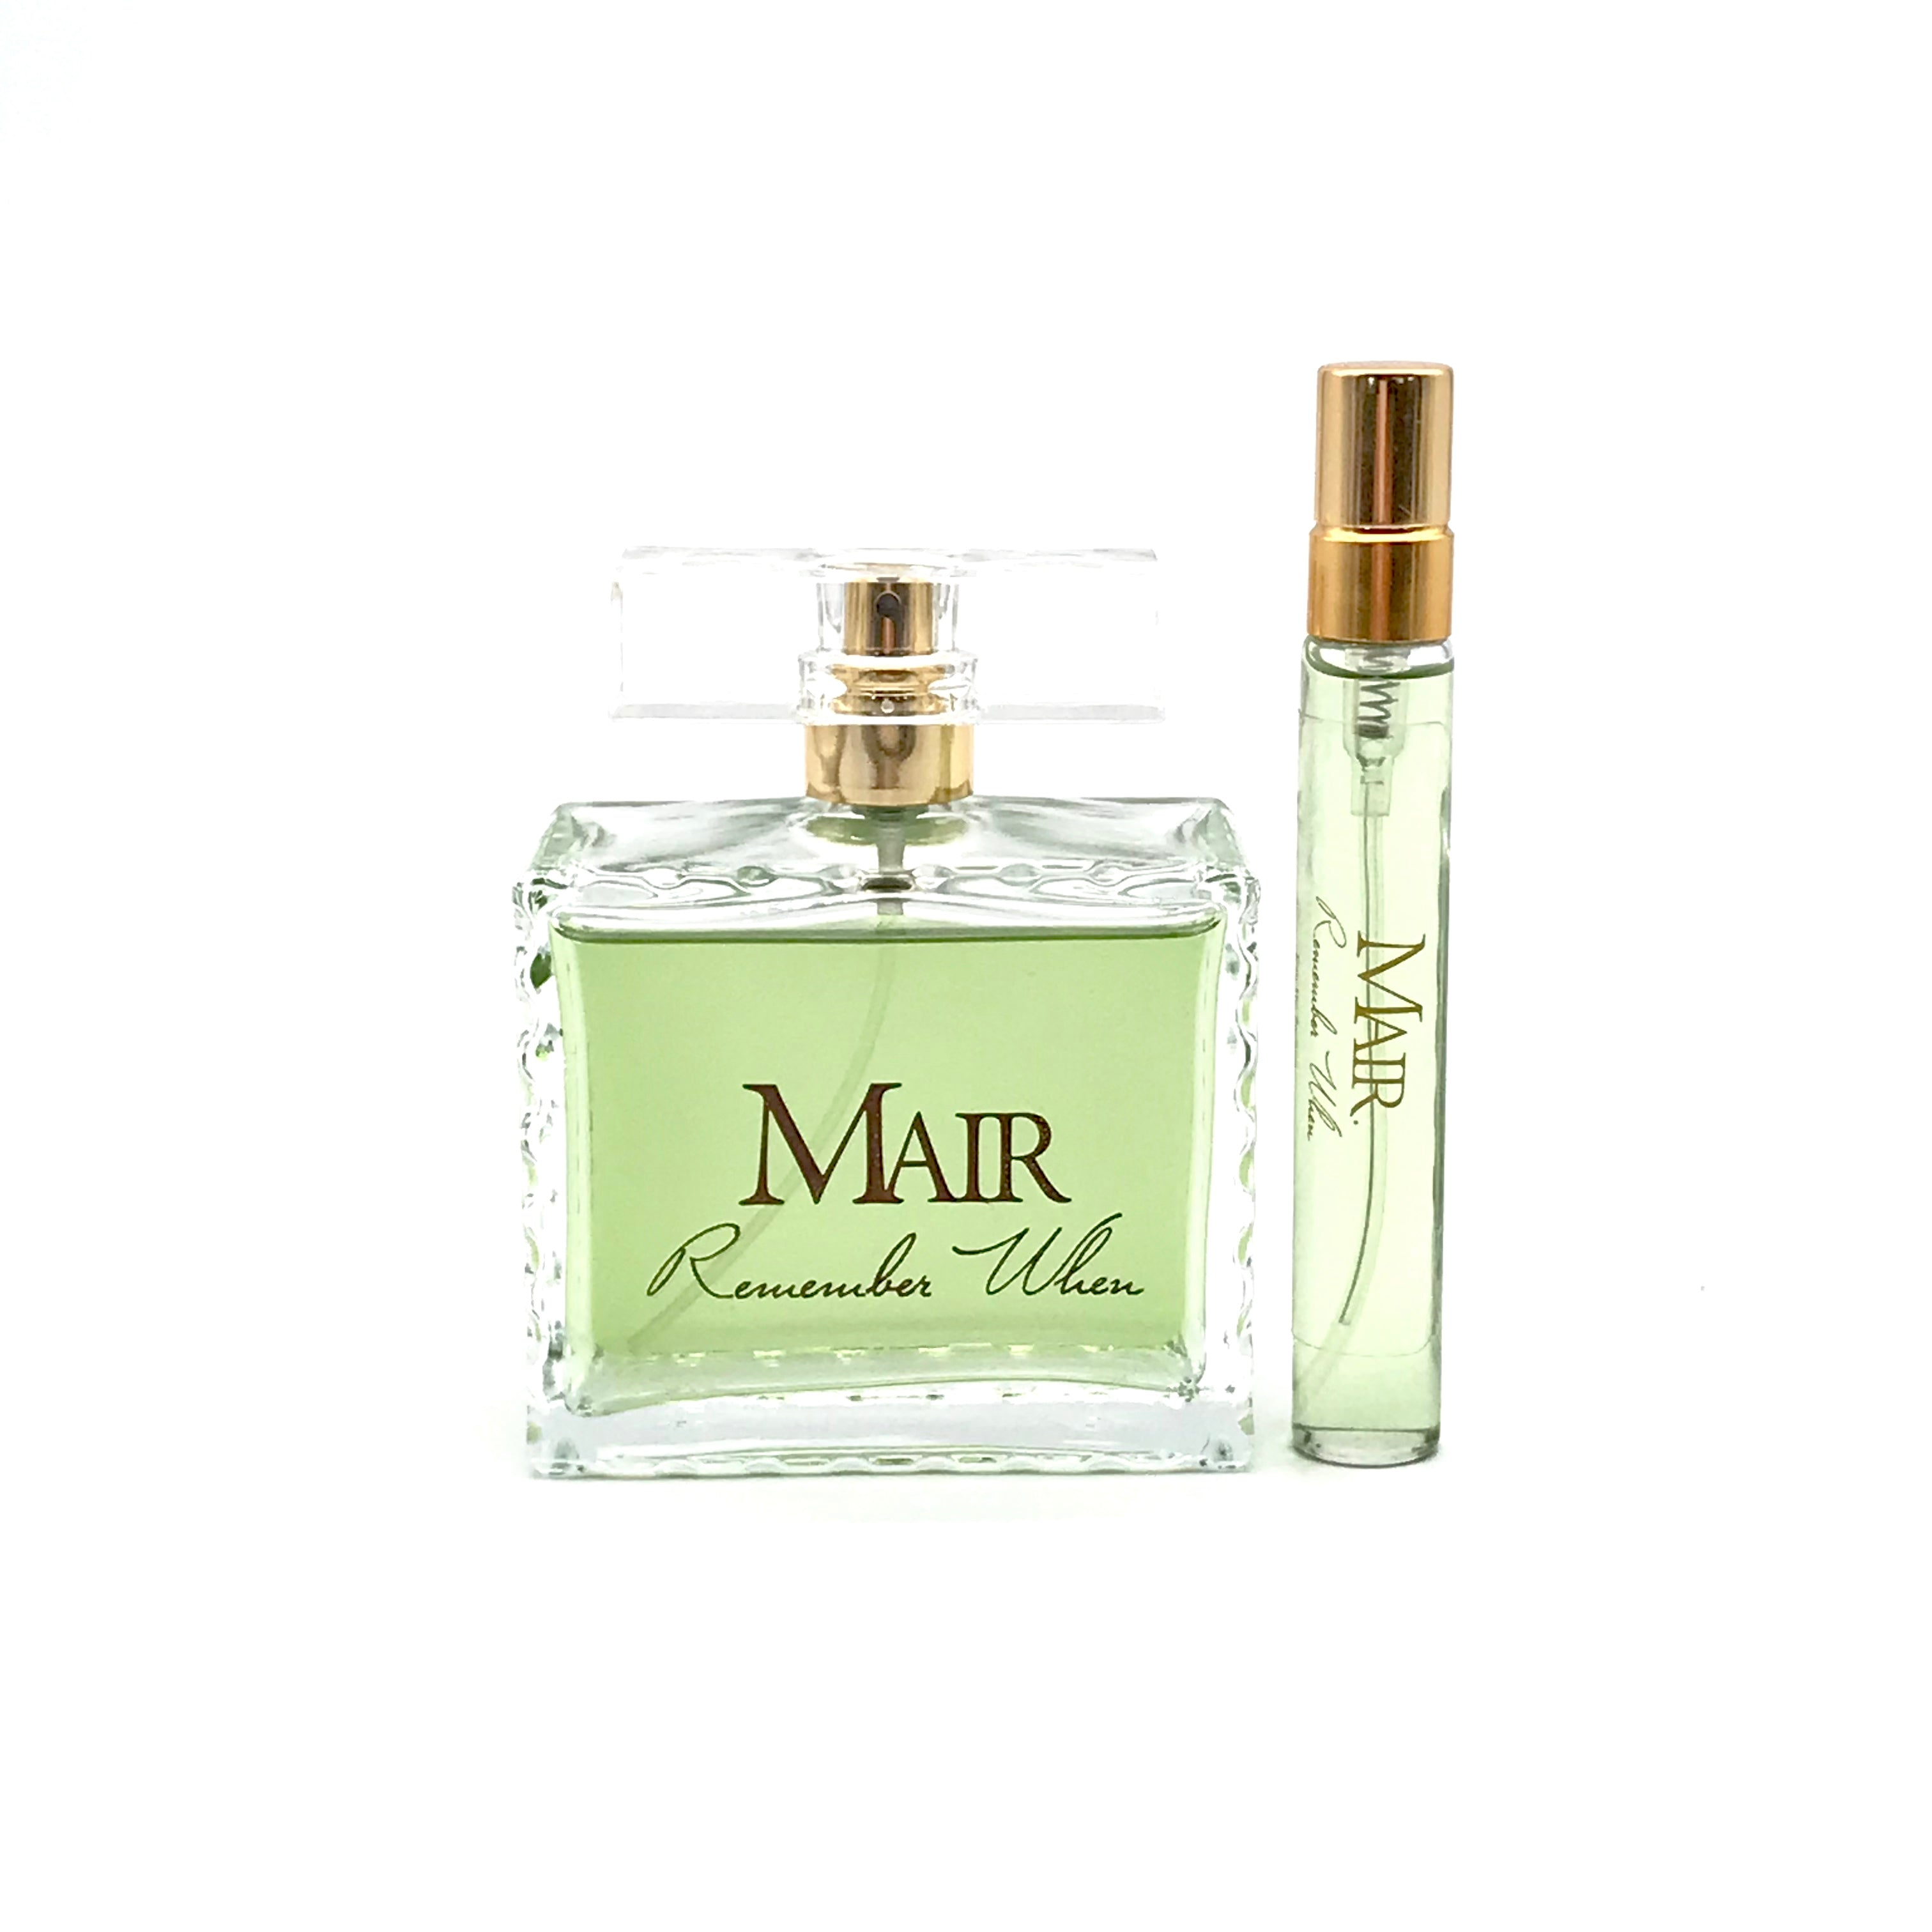 Mair Remember When Eau de Parfum